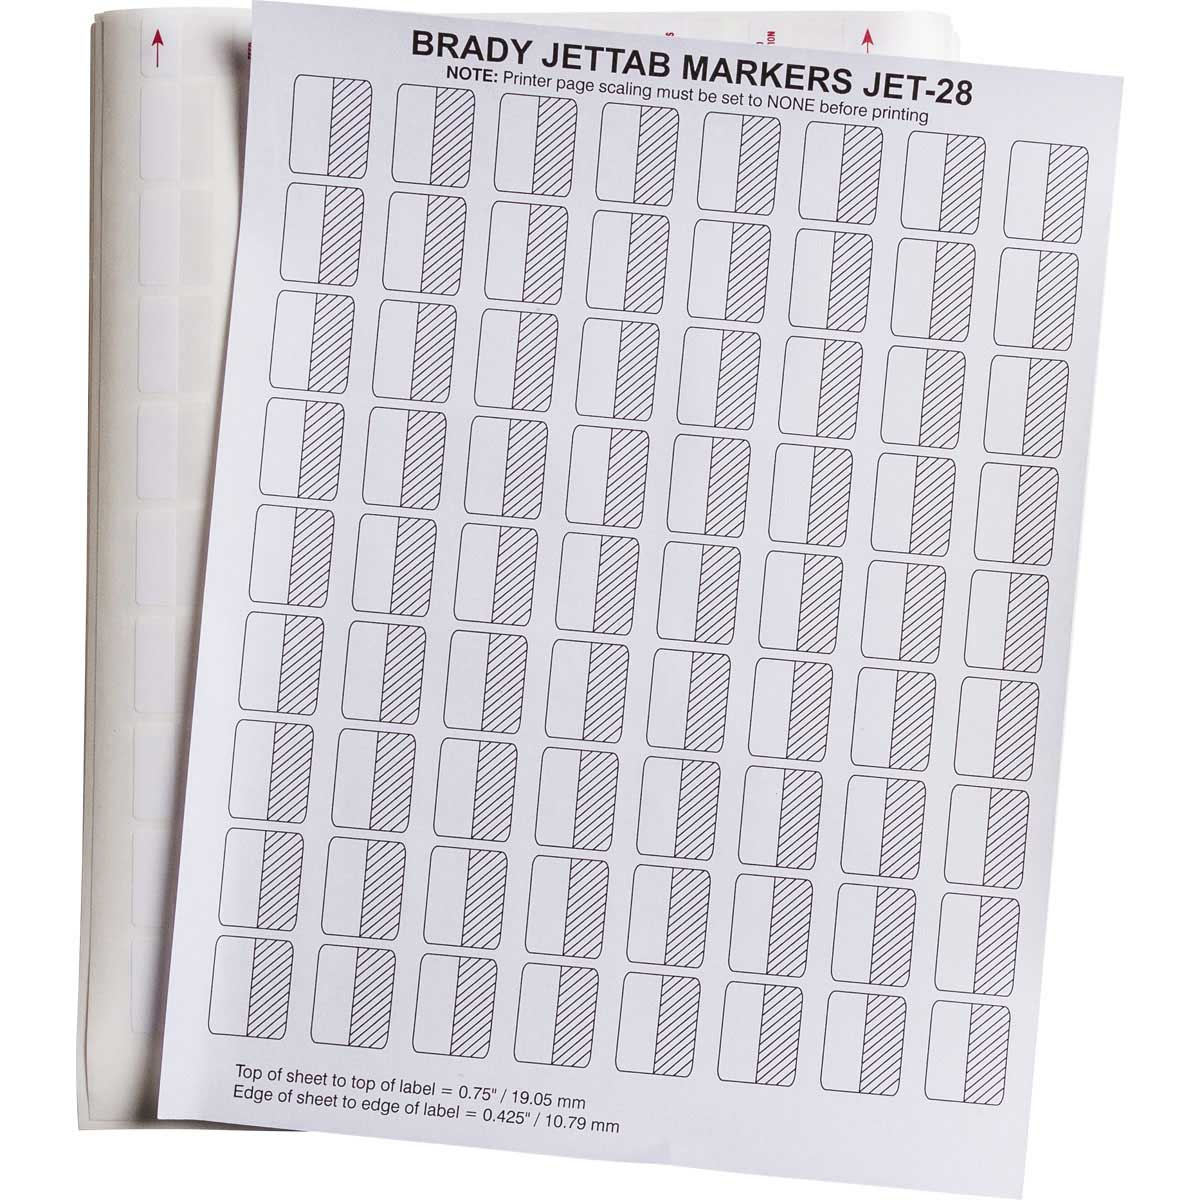 Brady part jet 28 117 3 ink jet printable labels for Brady label templates